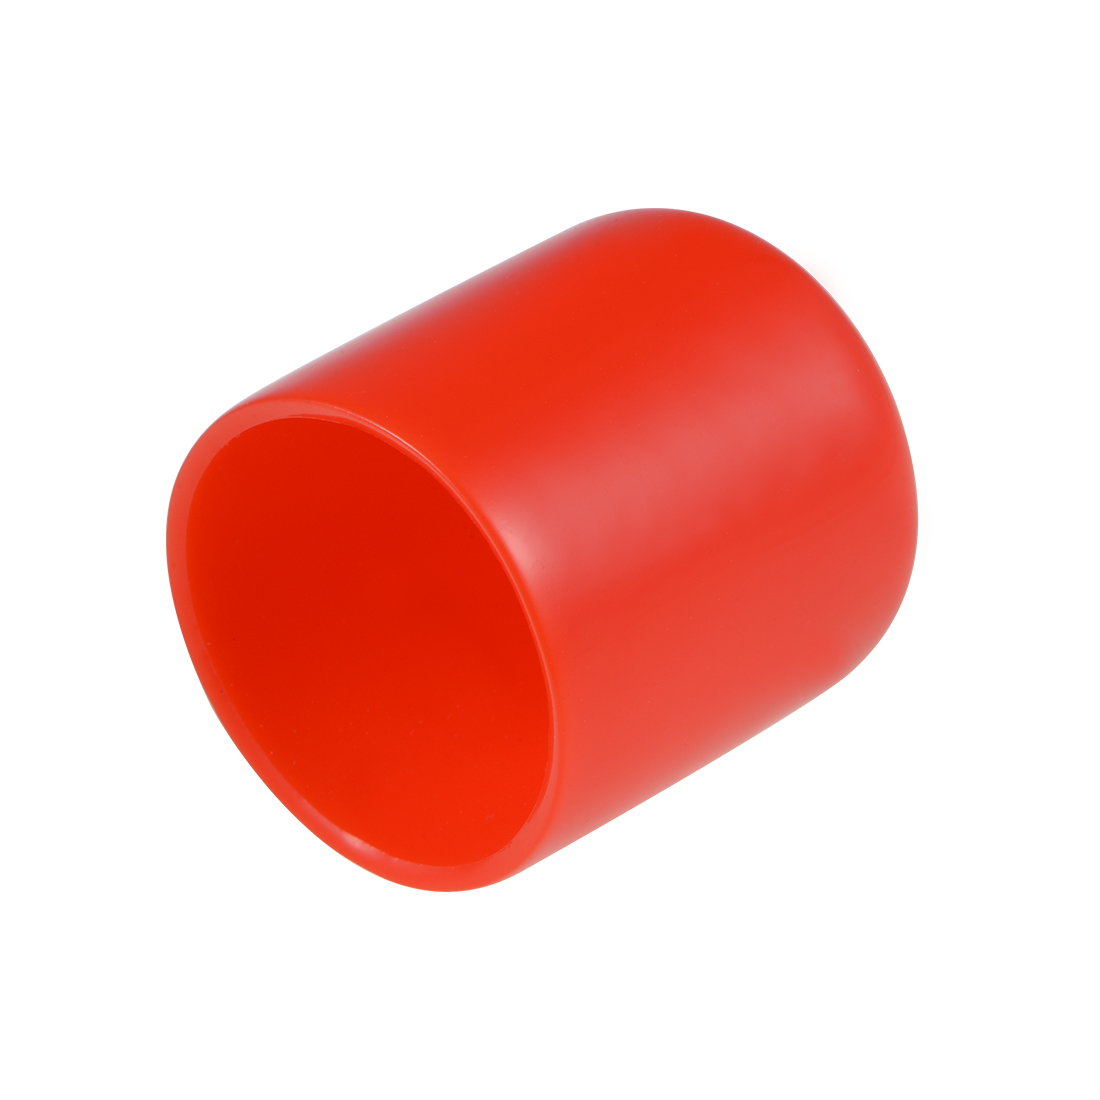 Screw Thread Protector, 29mm ID Round End Cap Cover Red Tube Caps 10pcs